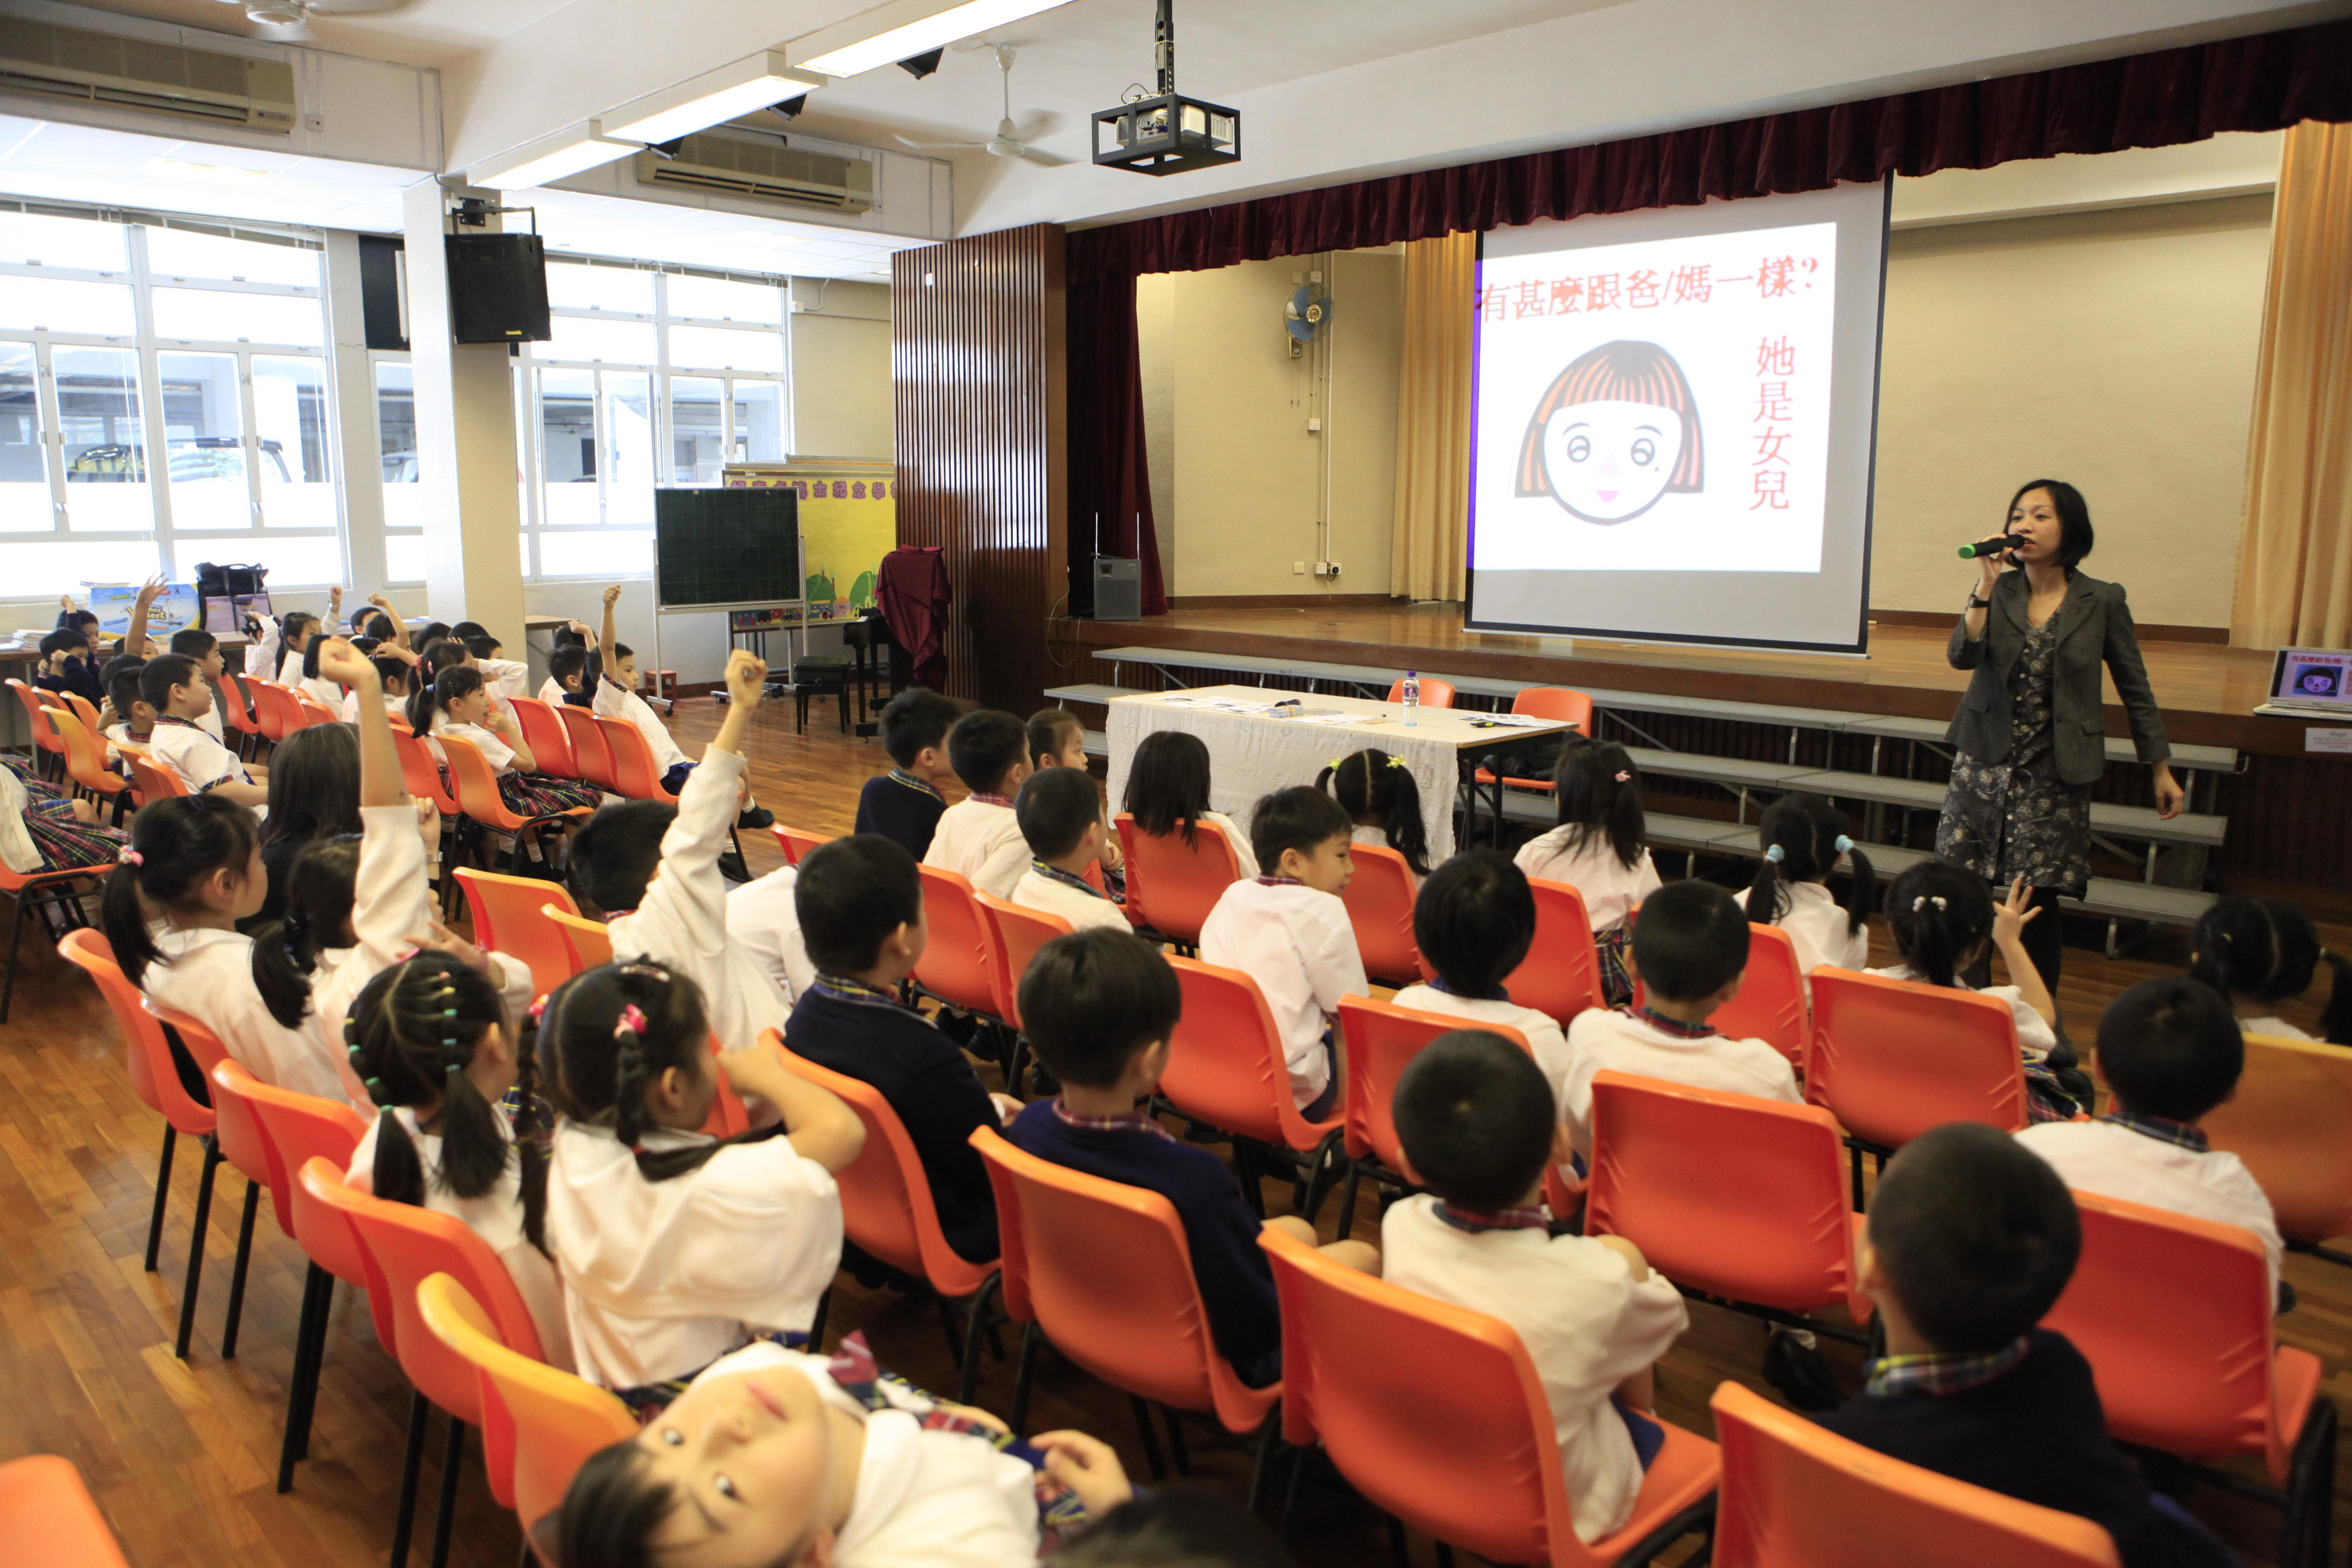 End of one-child policy in China is a welcomed step